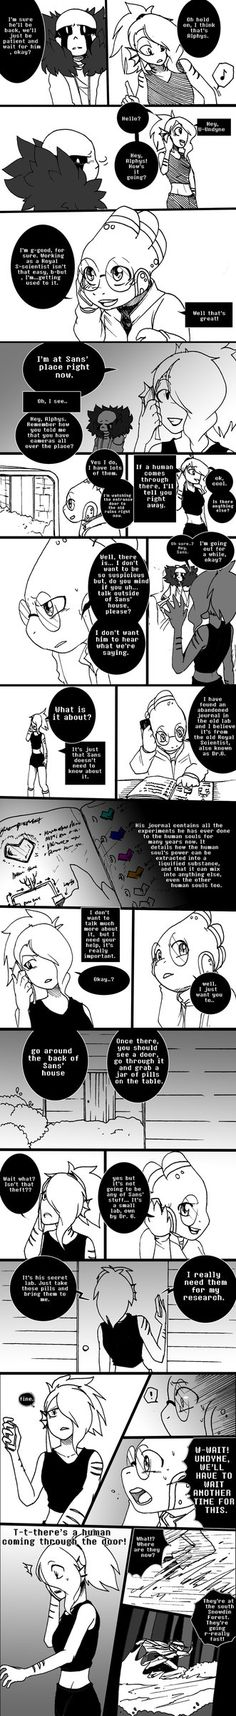 Anamnesis Part 3 - Pg 16-20 by GolzyBlazey.deviantart.com on @DeviantArt